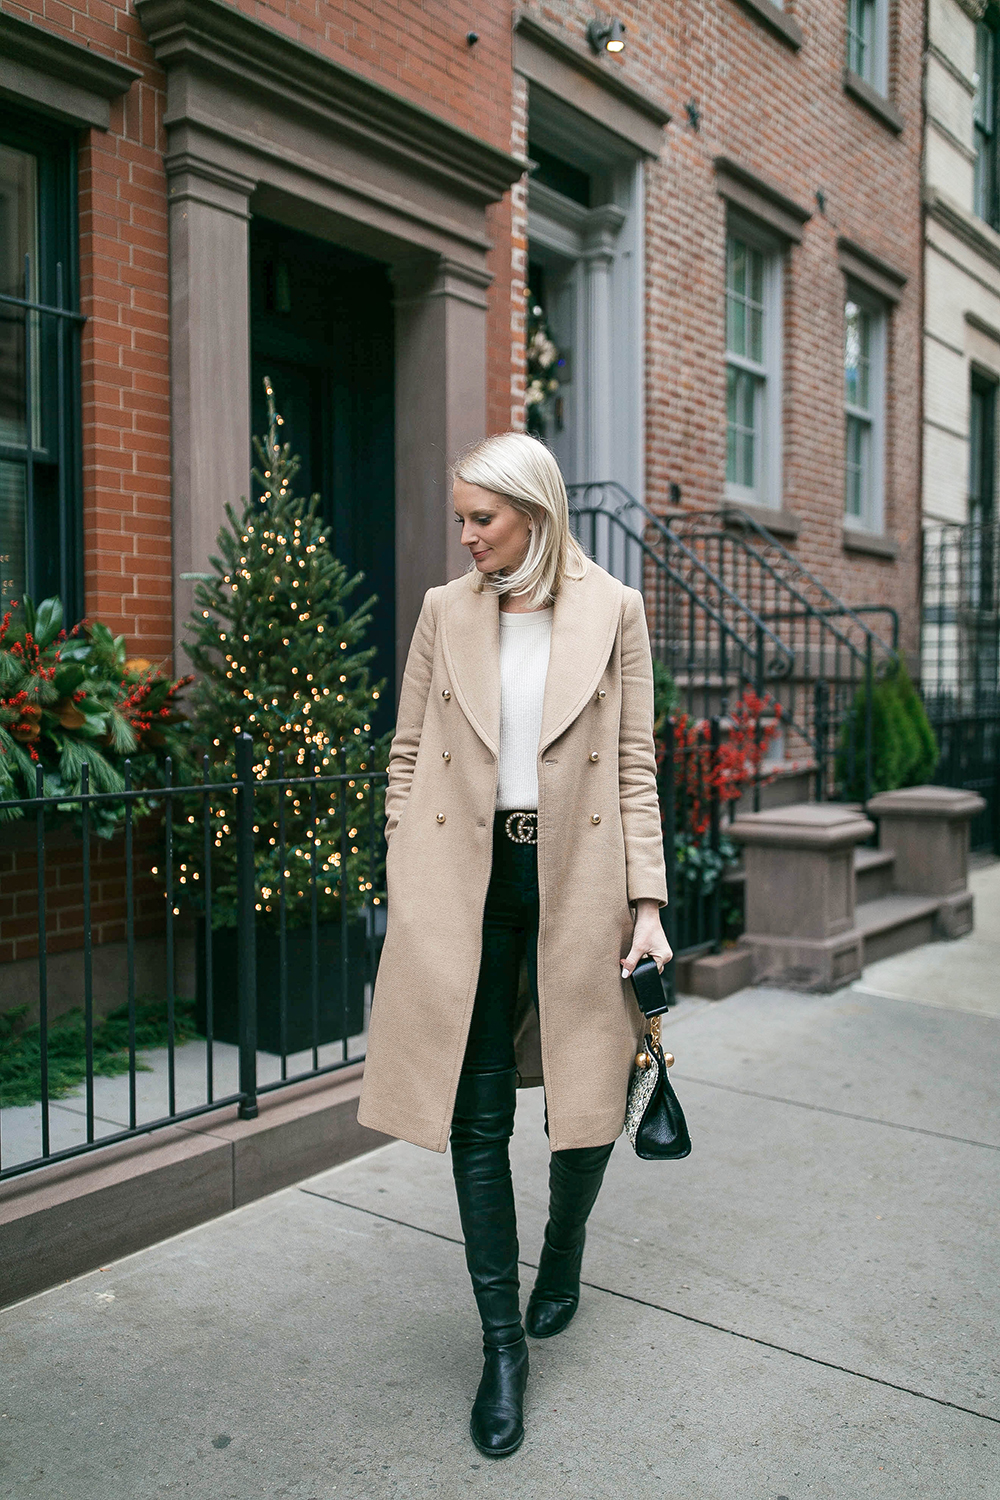 Club Monaco Cahndisse Camel Coat | The Style Scribe